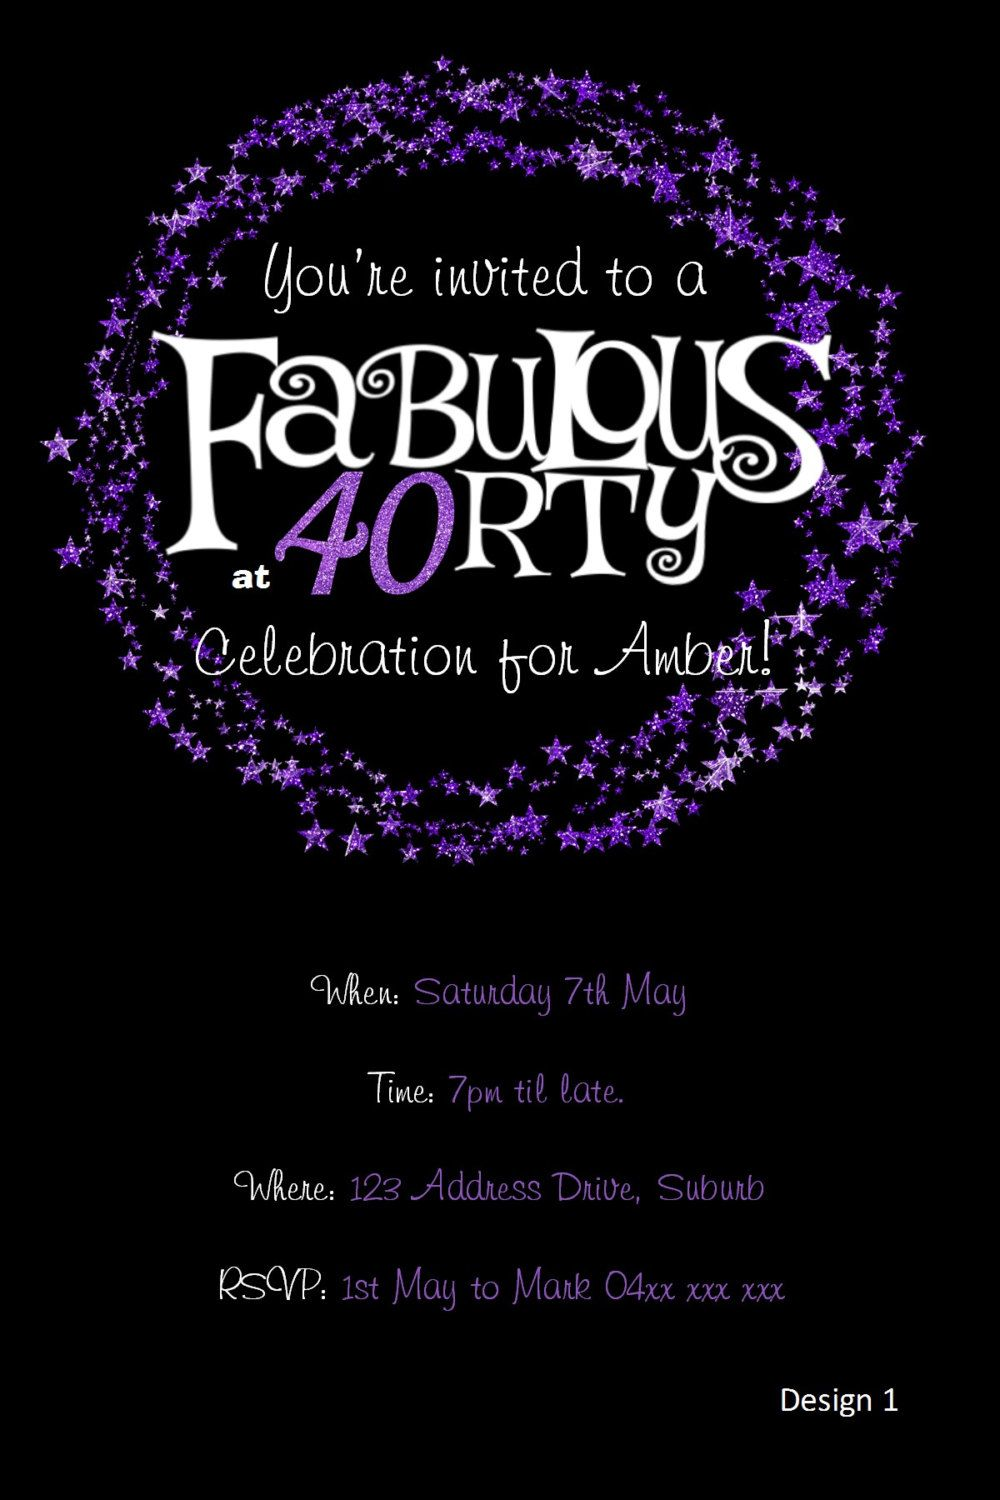 40th birthday invitation purple glitter invitation you print 40th birthday invitation purple glitter invitation you print jpeg file by kleezprints stopboris Image collections